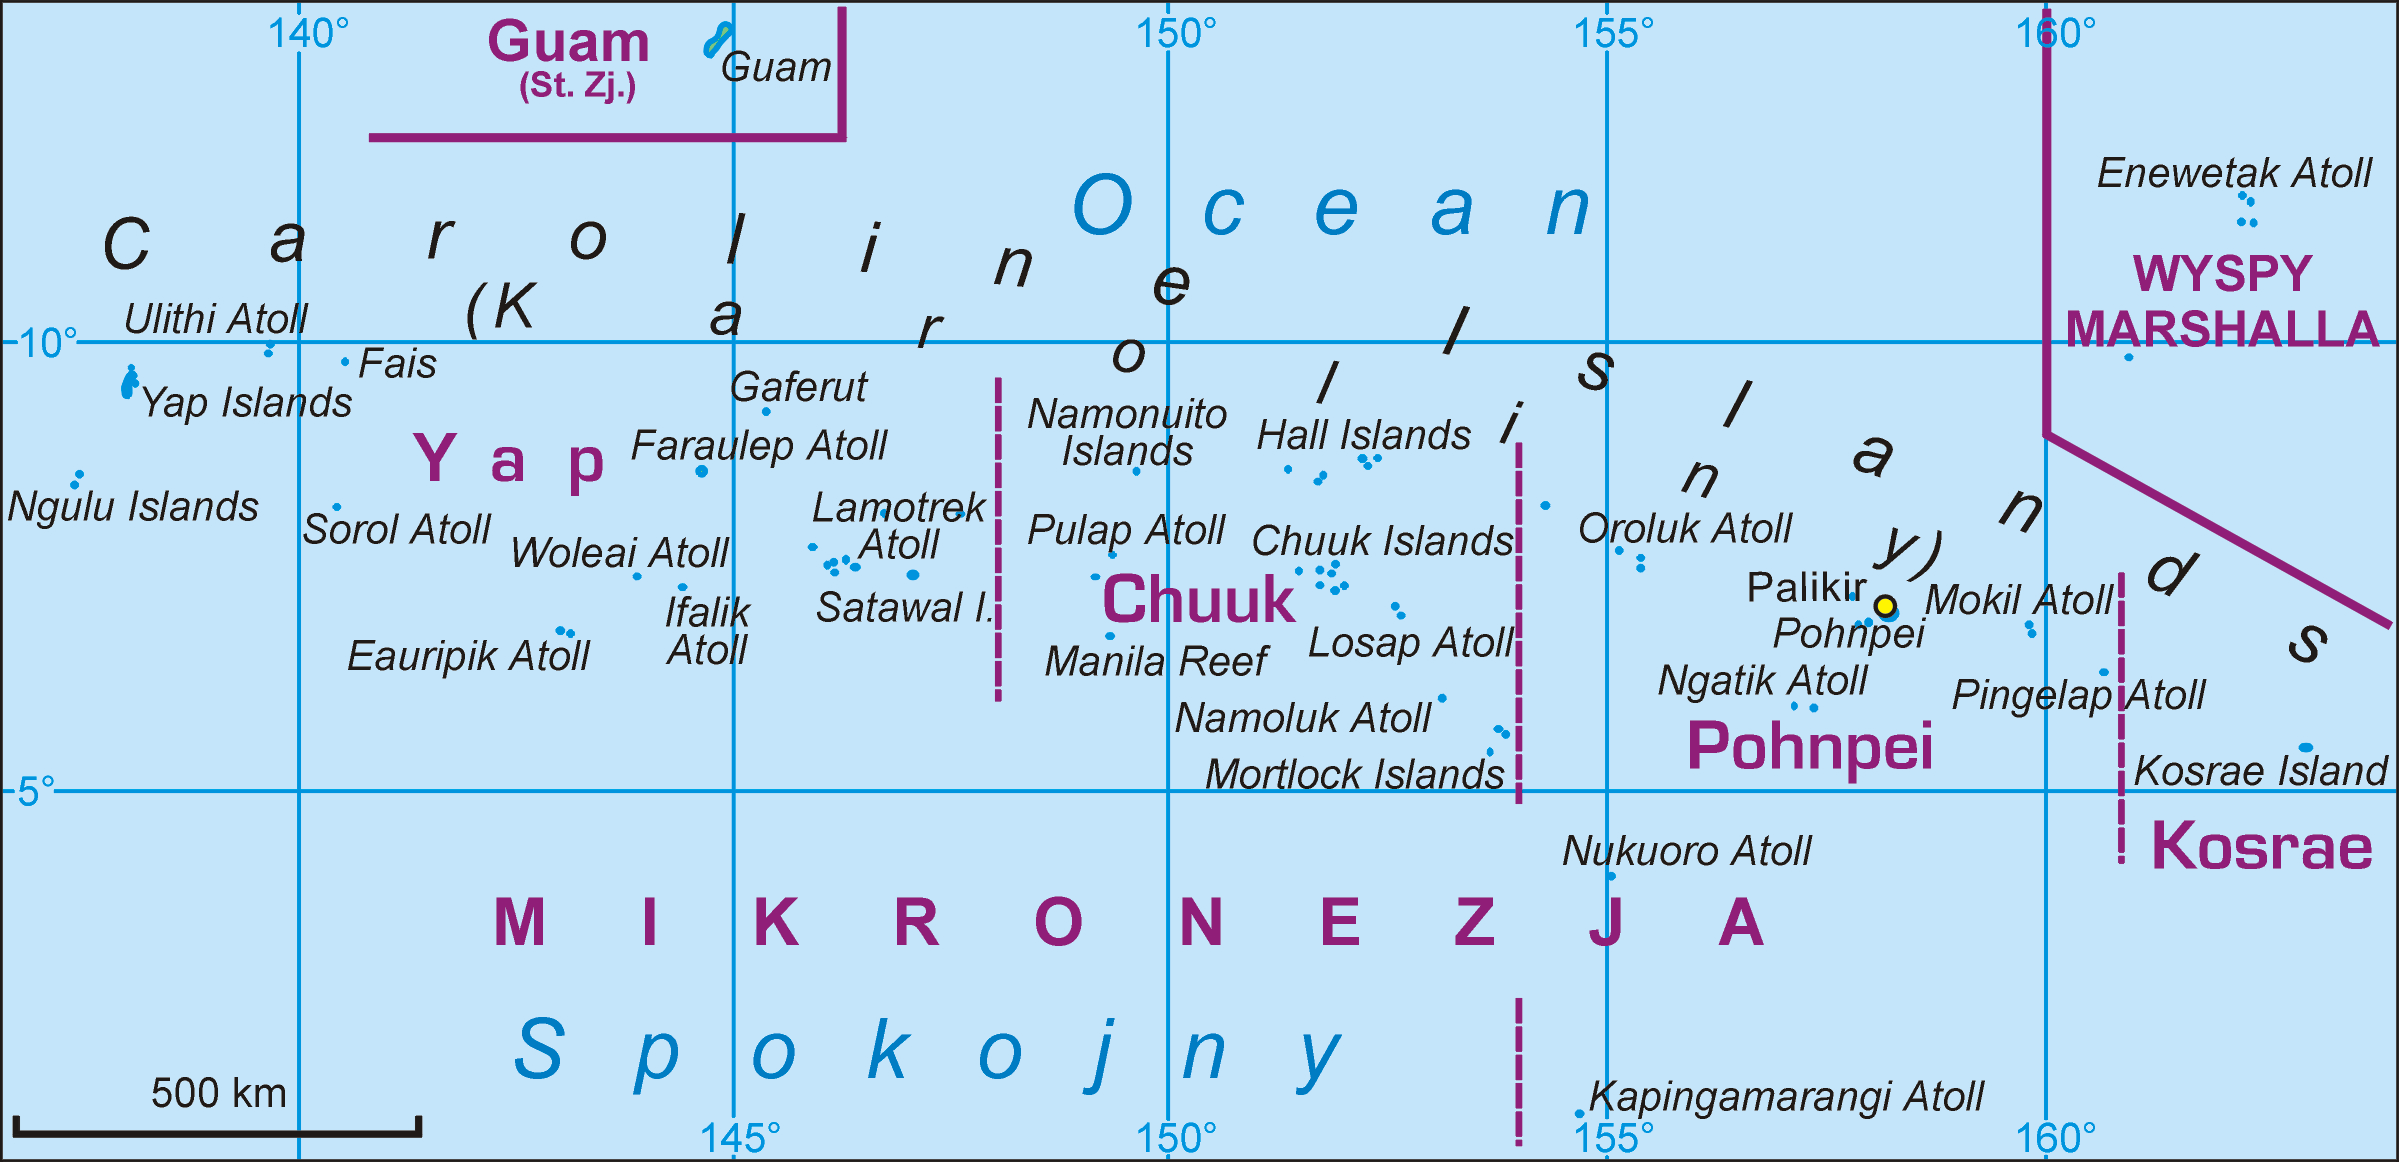 Federated States Of Micronesia Map File:Federated States of Micronesia map PL.png   Wikimedia Commons Federated States Of Micronesia Map